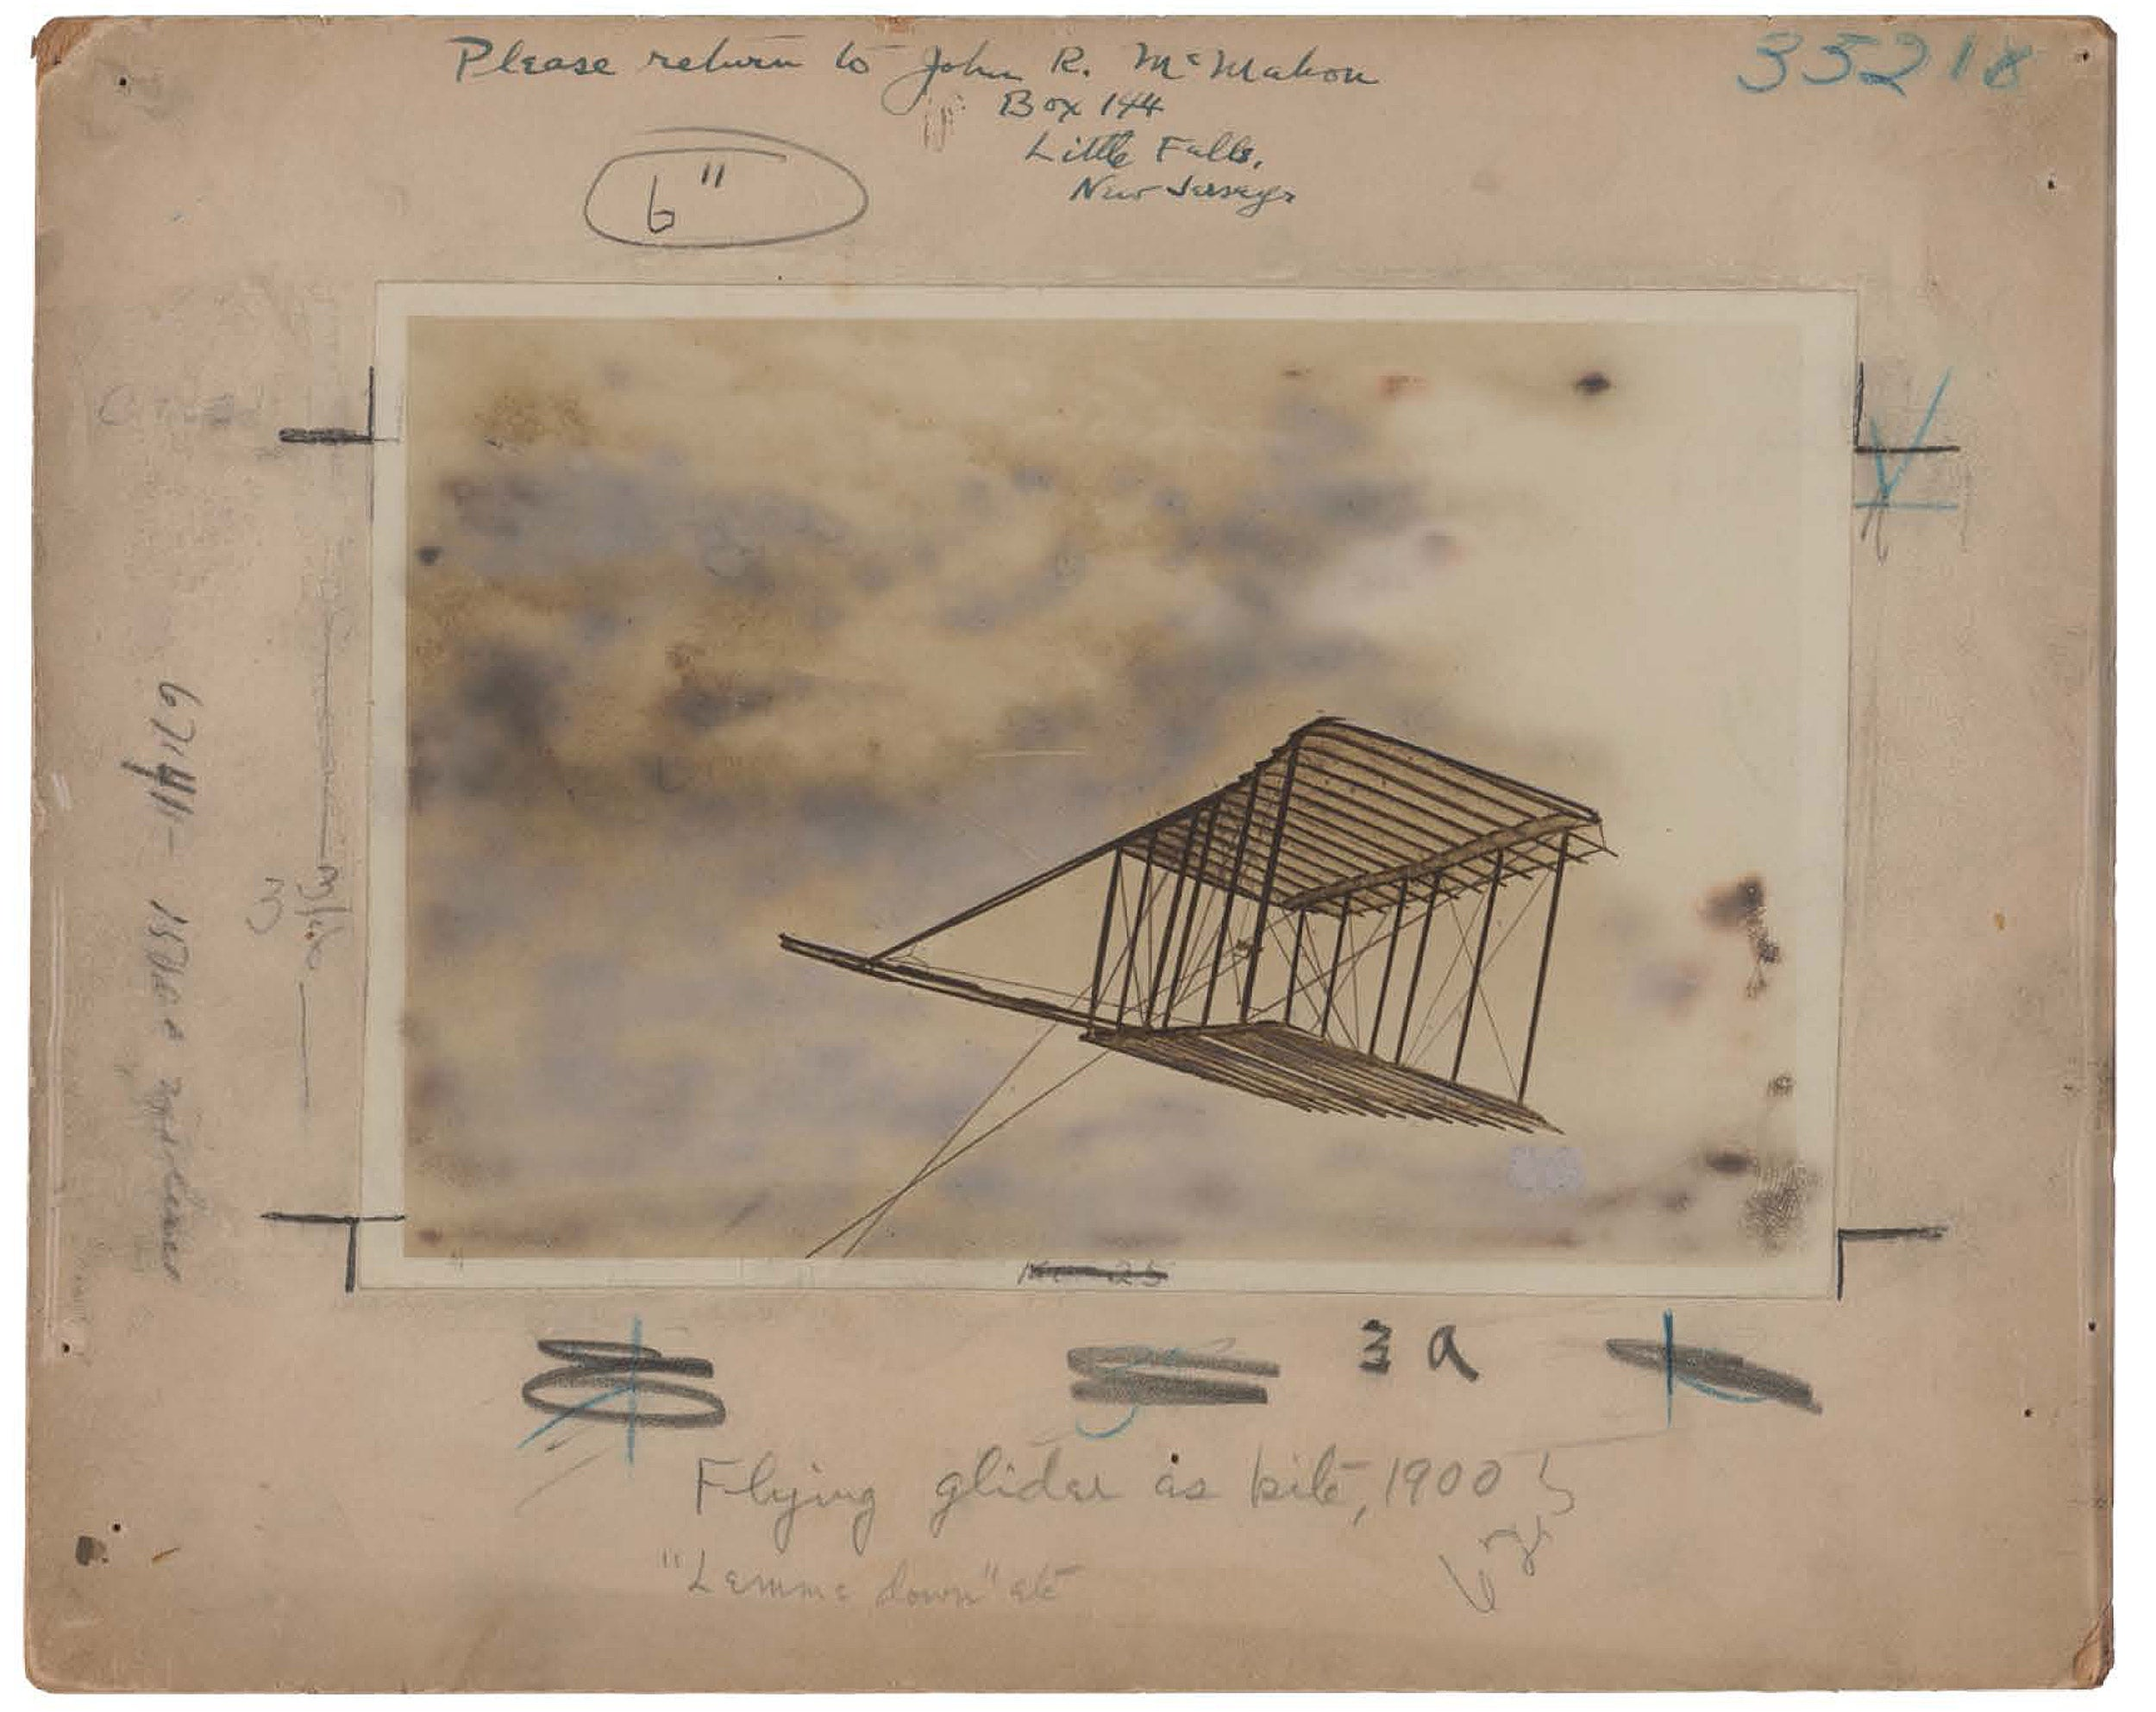 Photo of one of the Wright Brothers' first gliders.